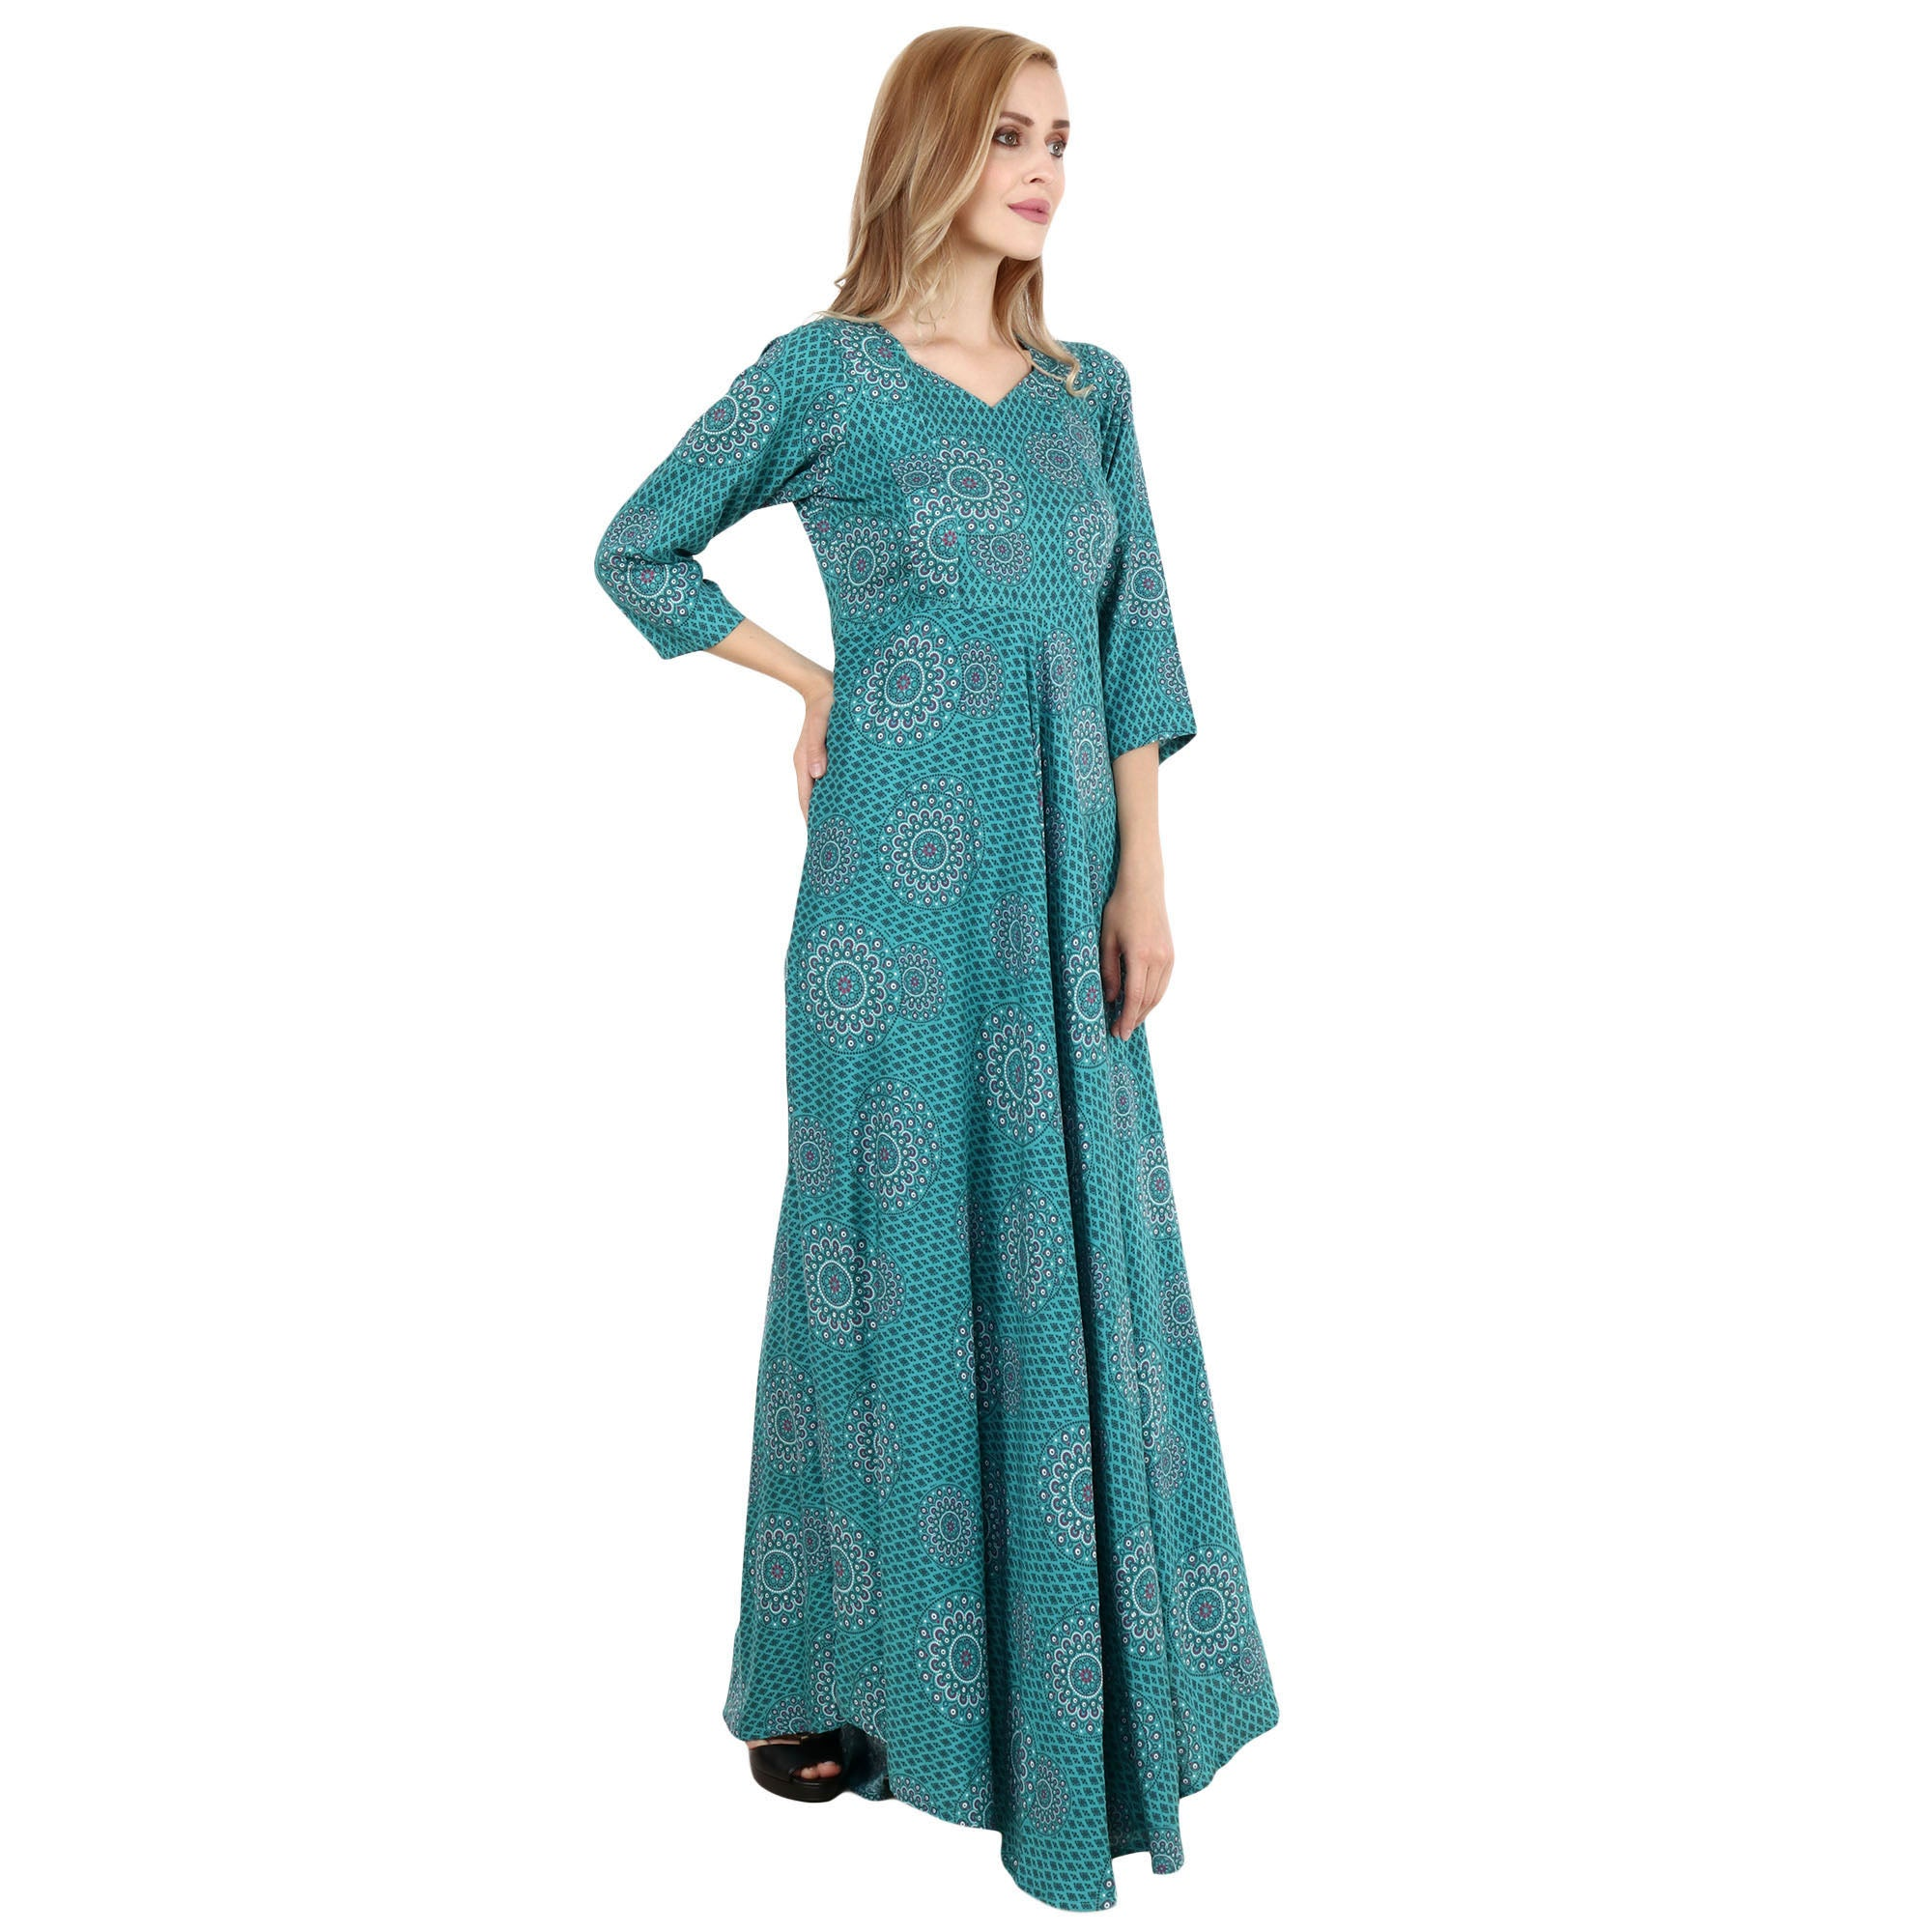 feeding, flared, maternity dresses, maxi dress, peacock green, plus size, plus size nursing and maternity dresses, printed, RAYON, soft rayon, ZIPPERS